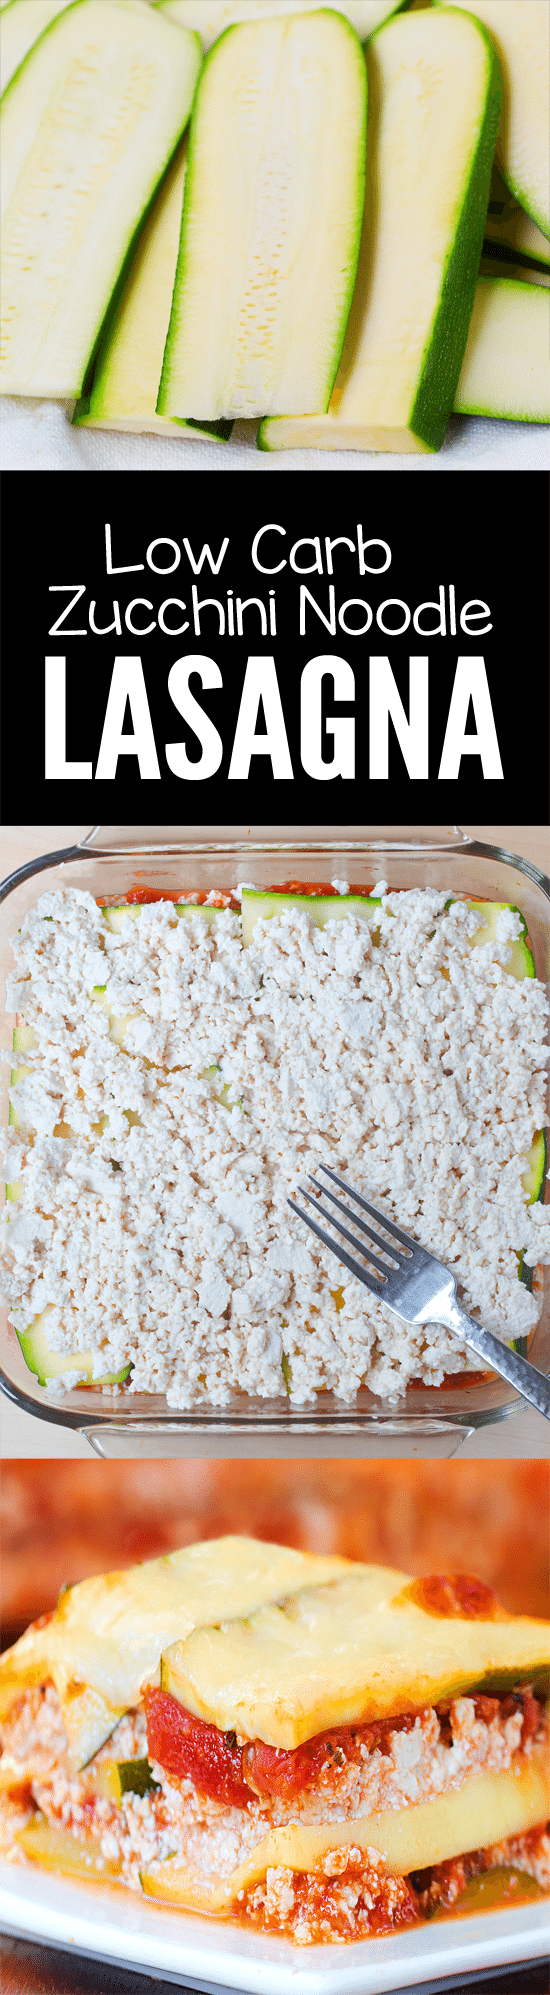 Zucchini stands in for the noodles in this easy lightened-up zucchini lasagna recipe from @choccoveredkt